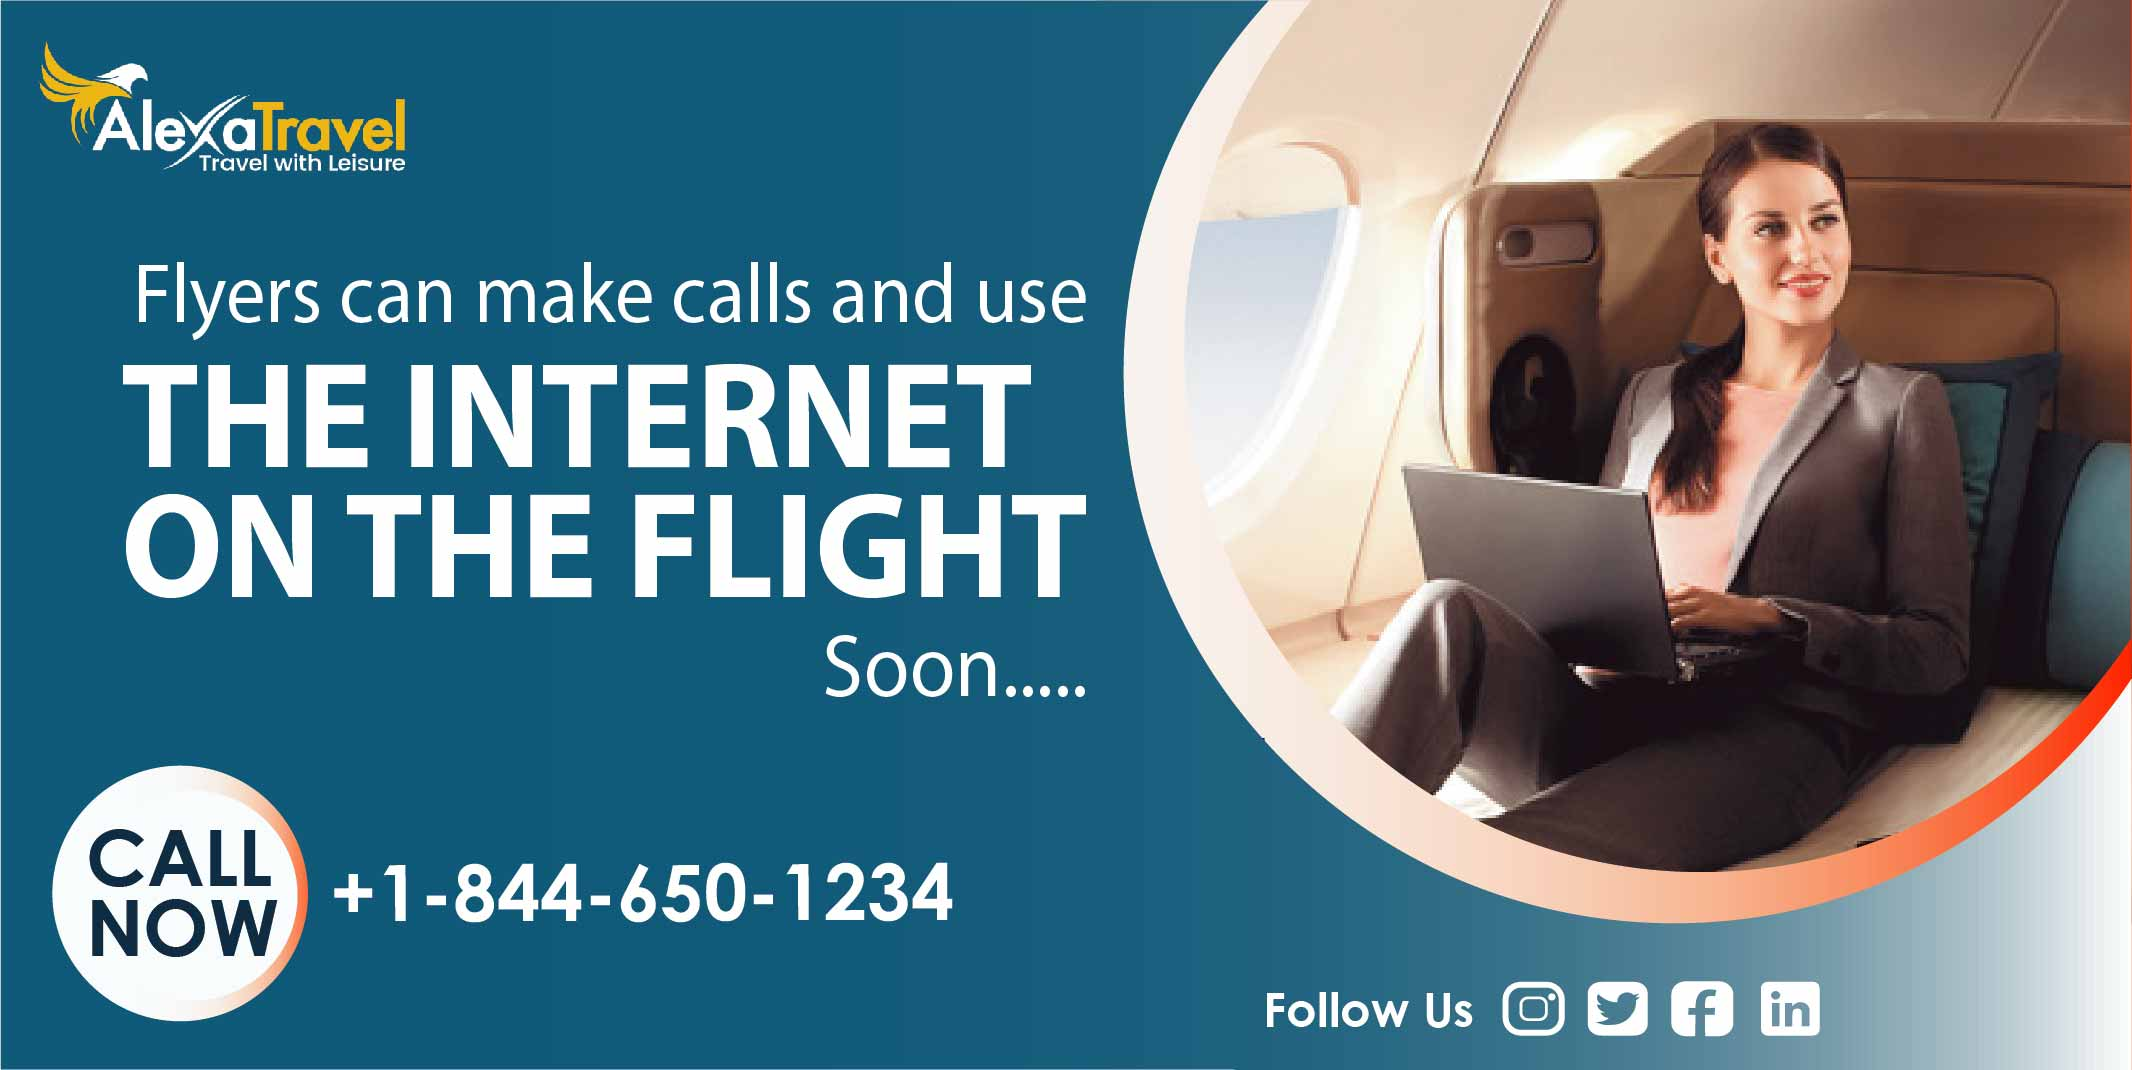 flyers can make calls and use the internet on the flight soon